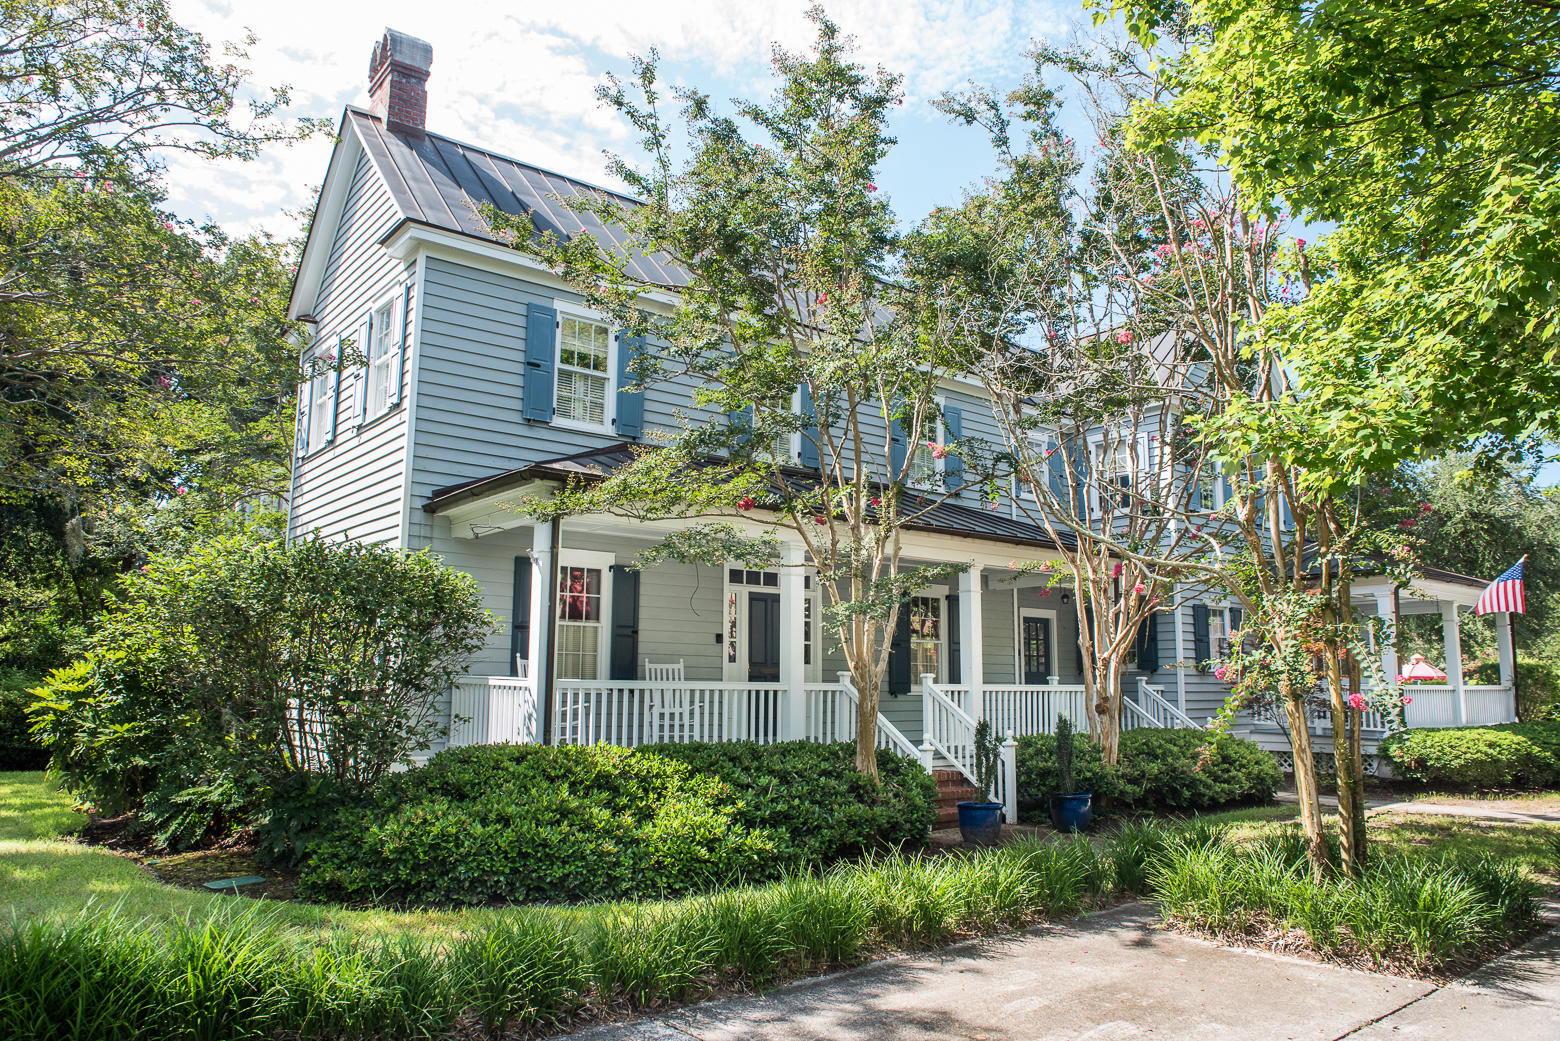 Old Village Homes For Sale - 747 Pitt, Mount Pleasant, SC - 47